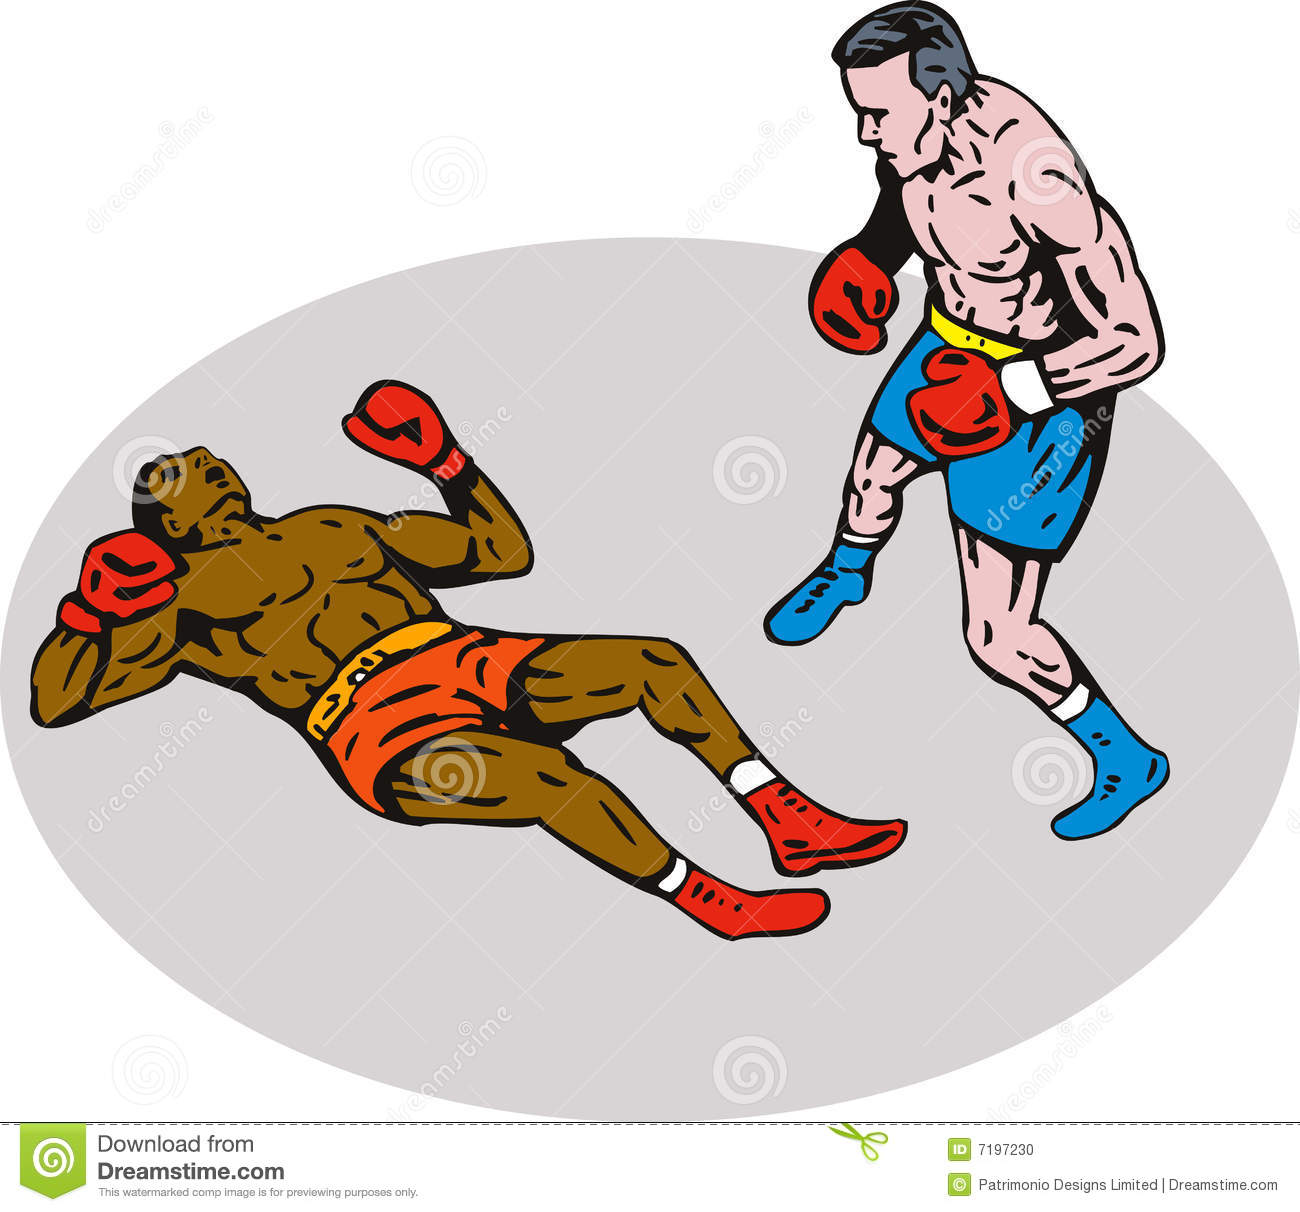 Knock Out Clip Art.